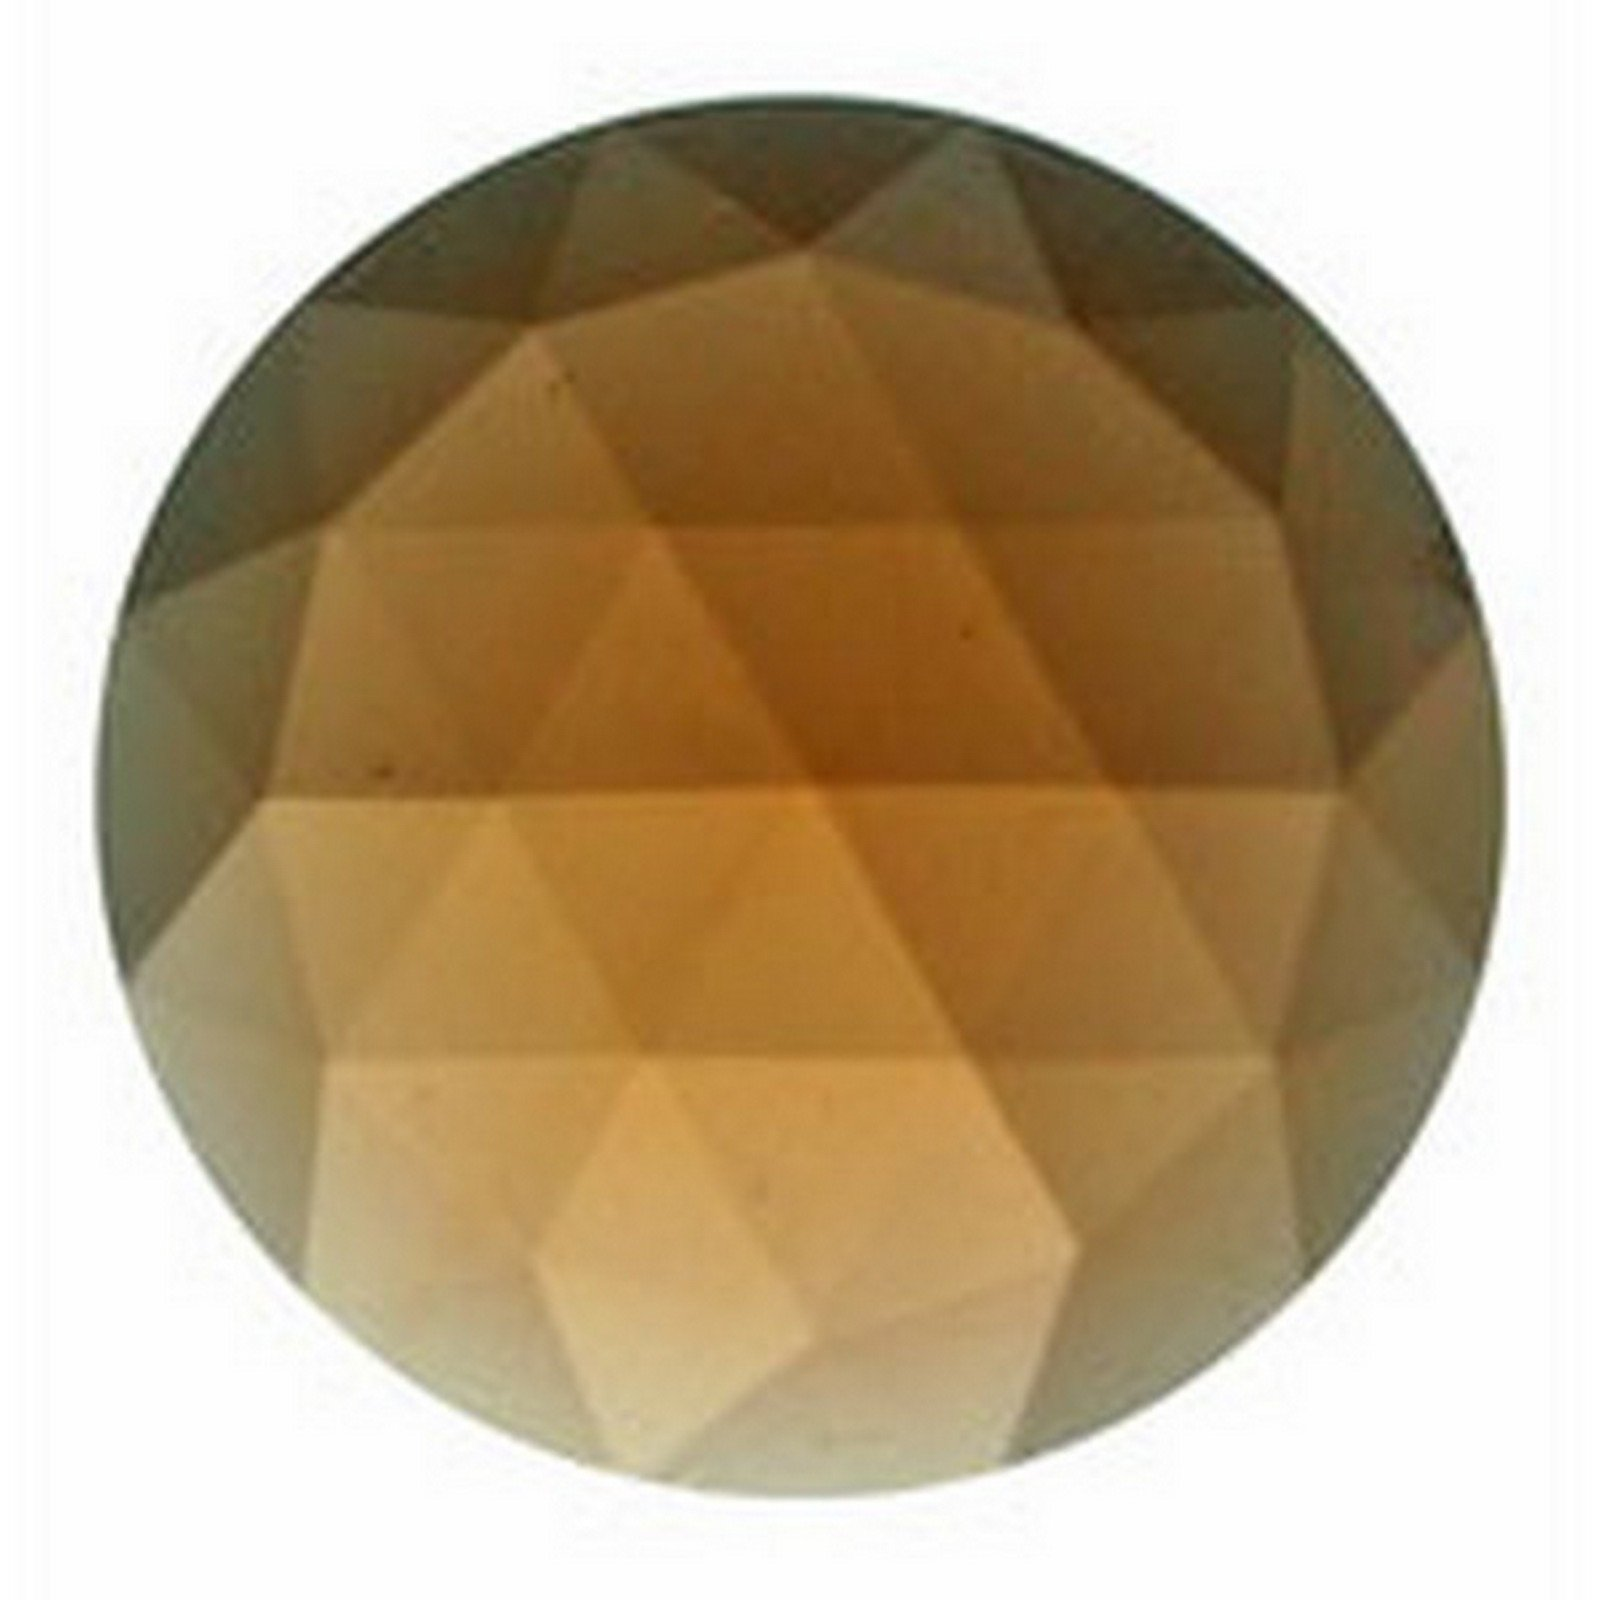 Stained Glass Jewels - 25mm Round Faceted - Peach (Pack of 4) By Stallings Stained Glass by Stallings Stained Glass